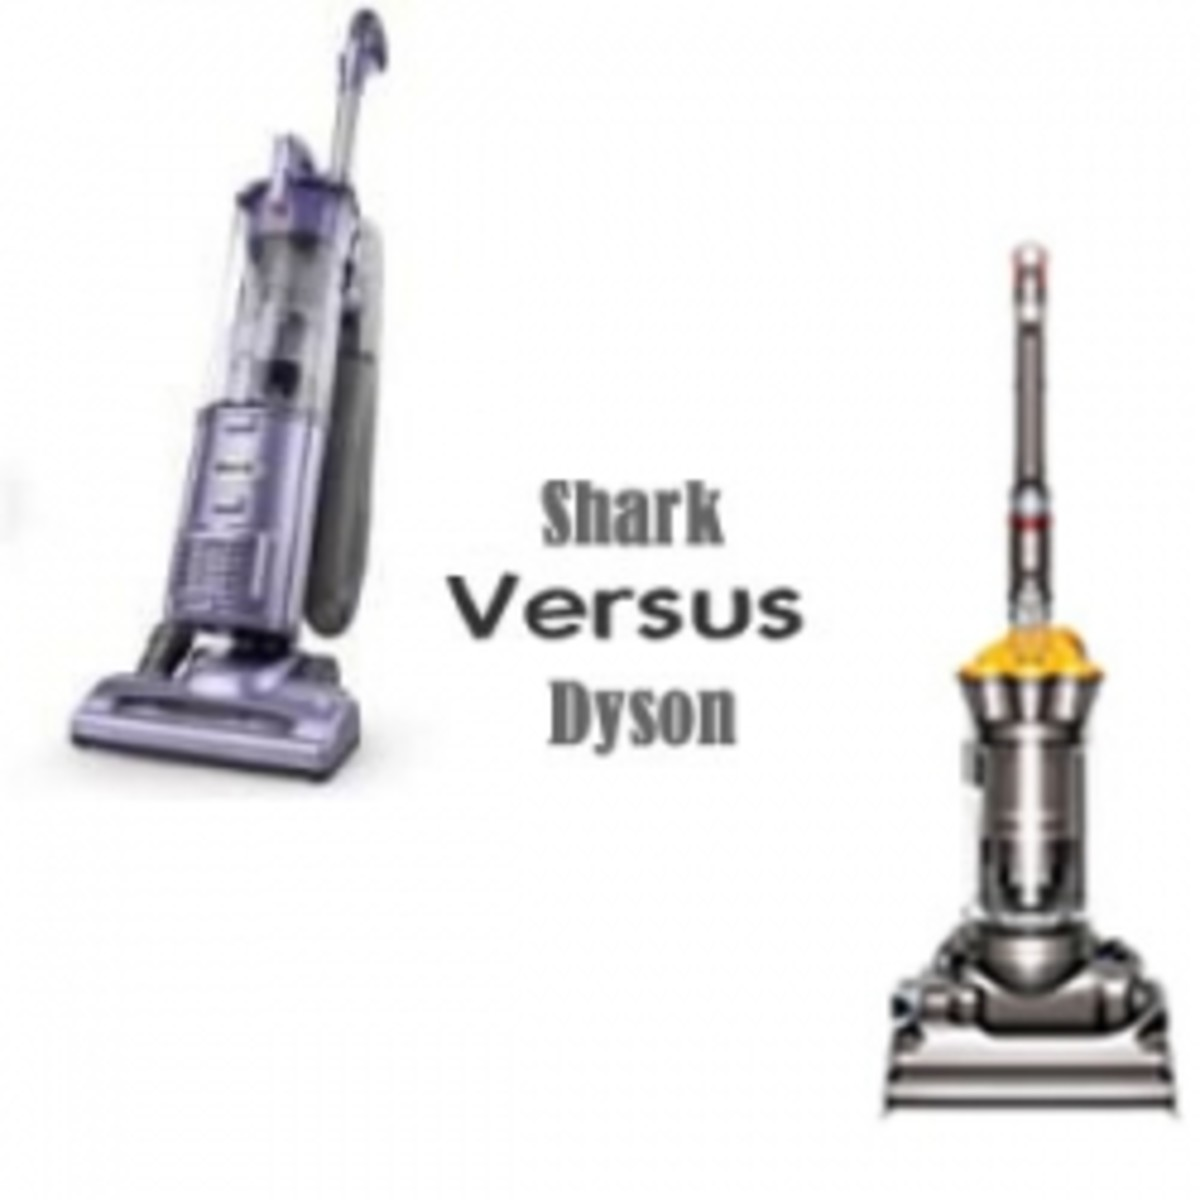 9e7936e762a Comparing Shark vs Dyson Vacuum Cleaners - An Indepth Review